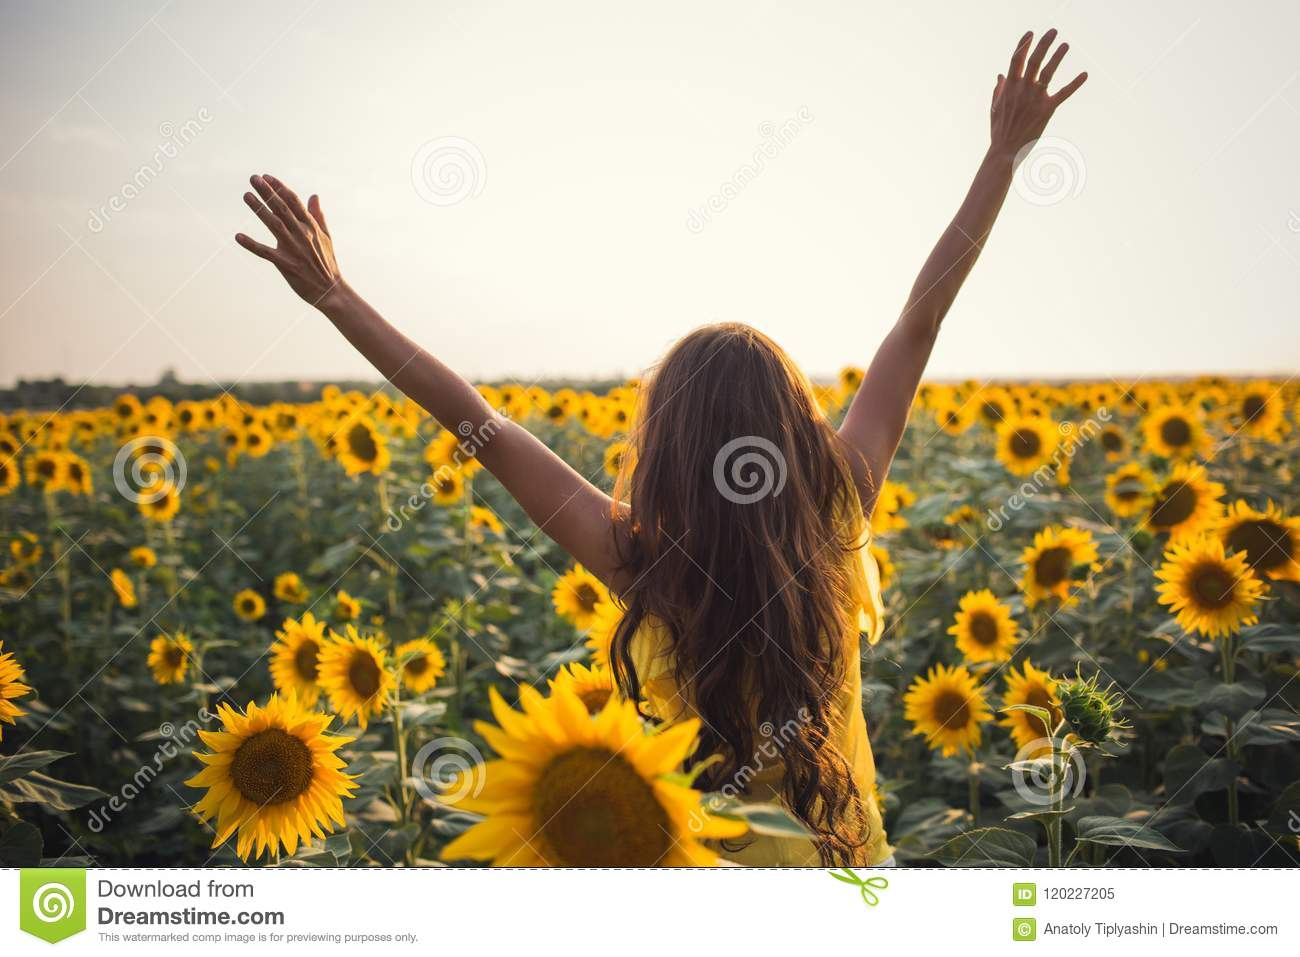 Beautiful woman with long hair hands up in a field of sunflowers